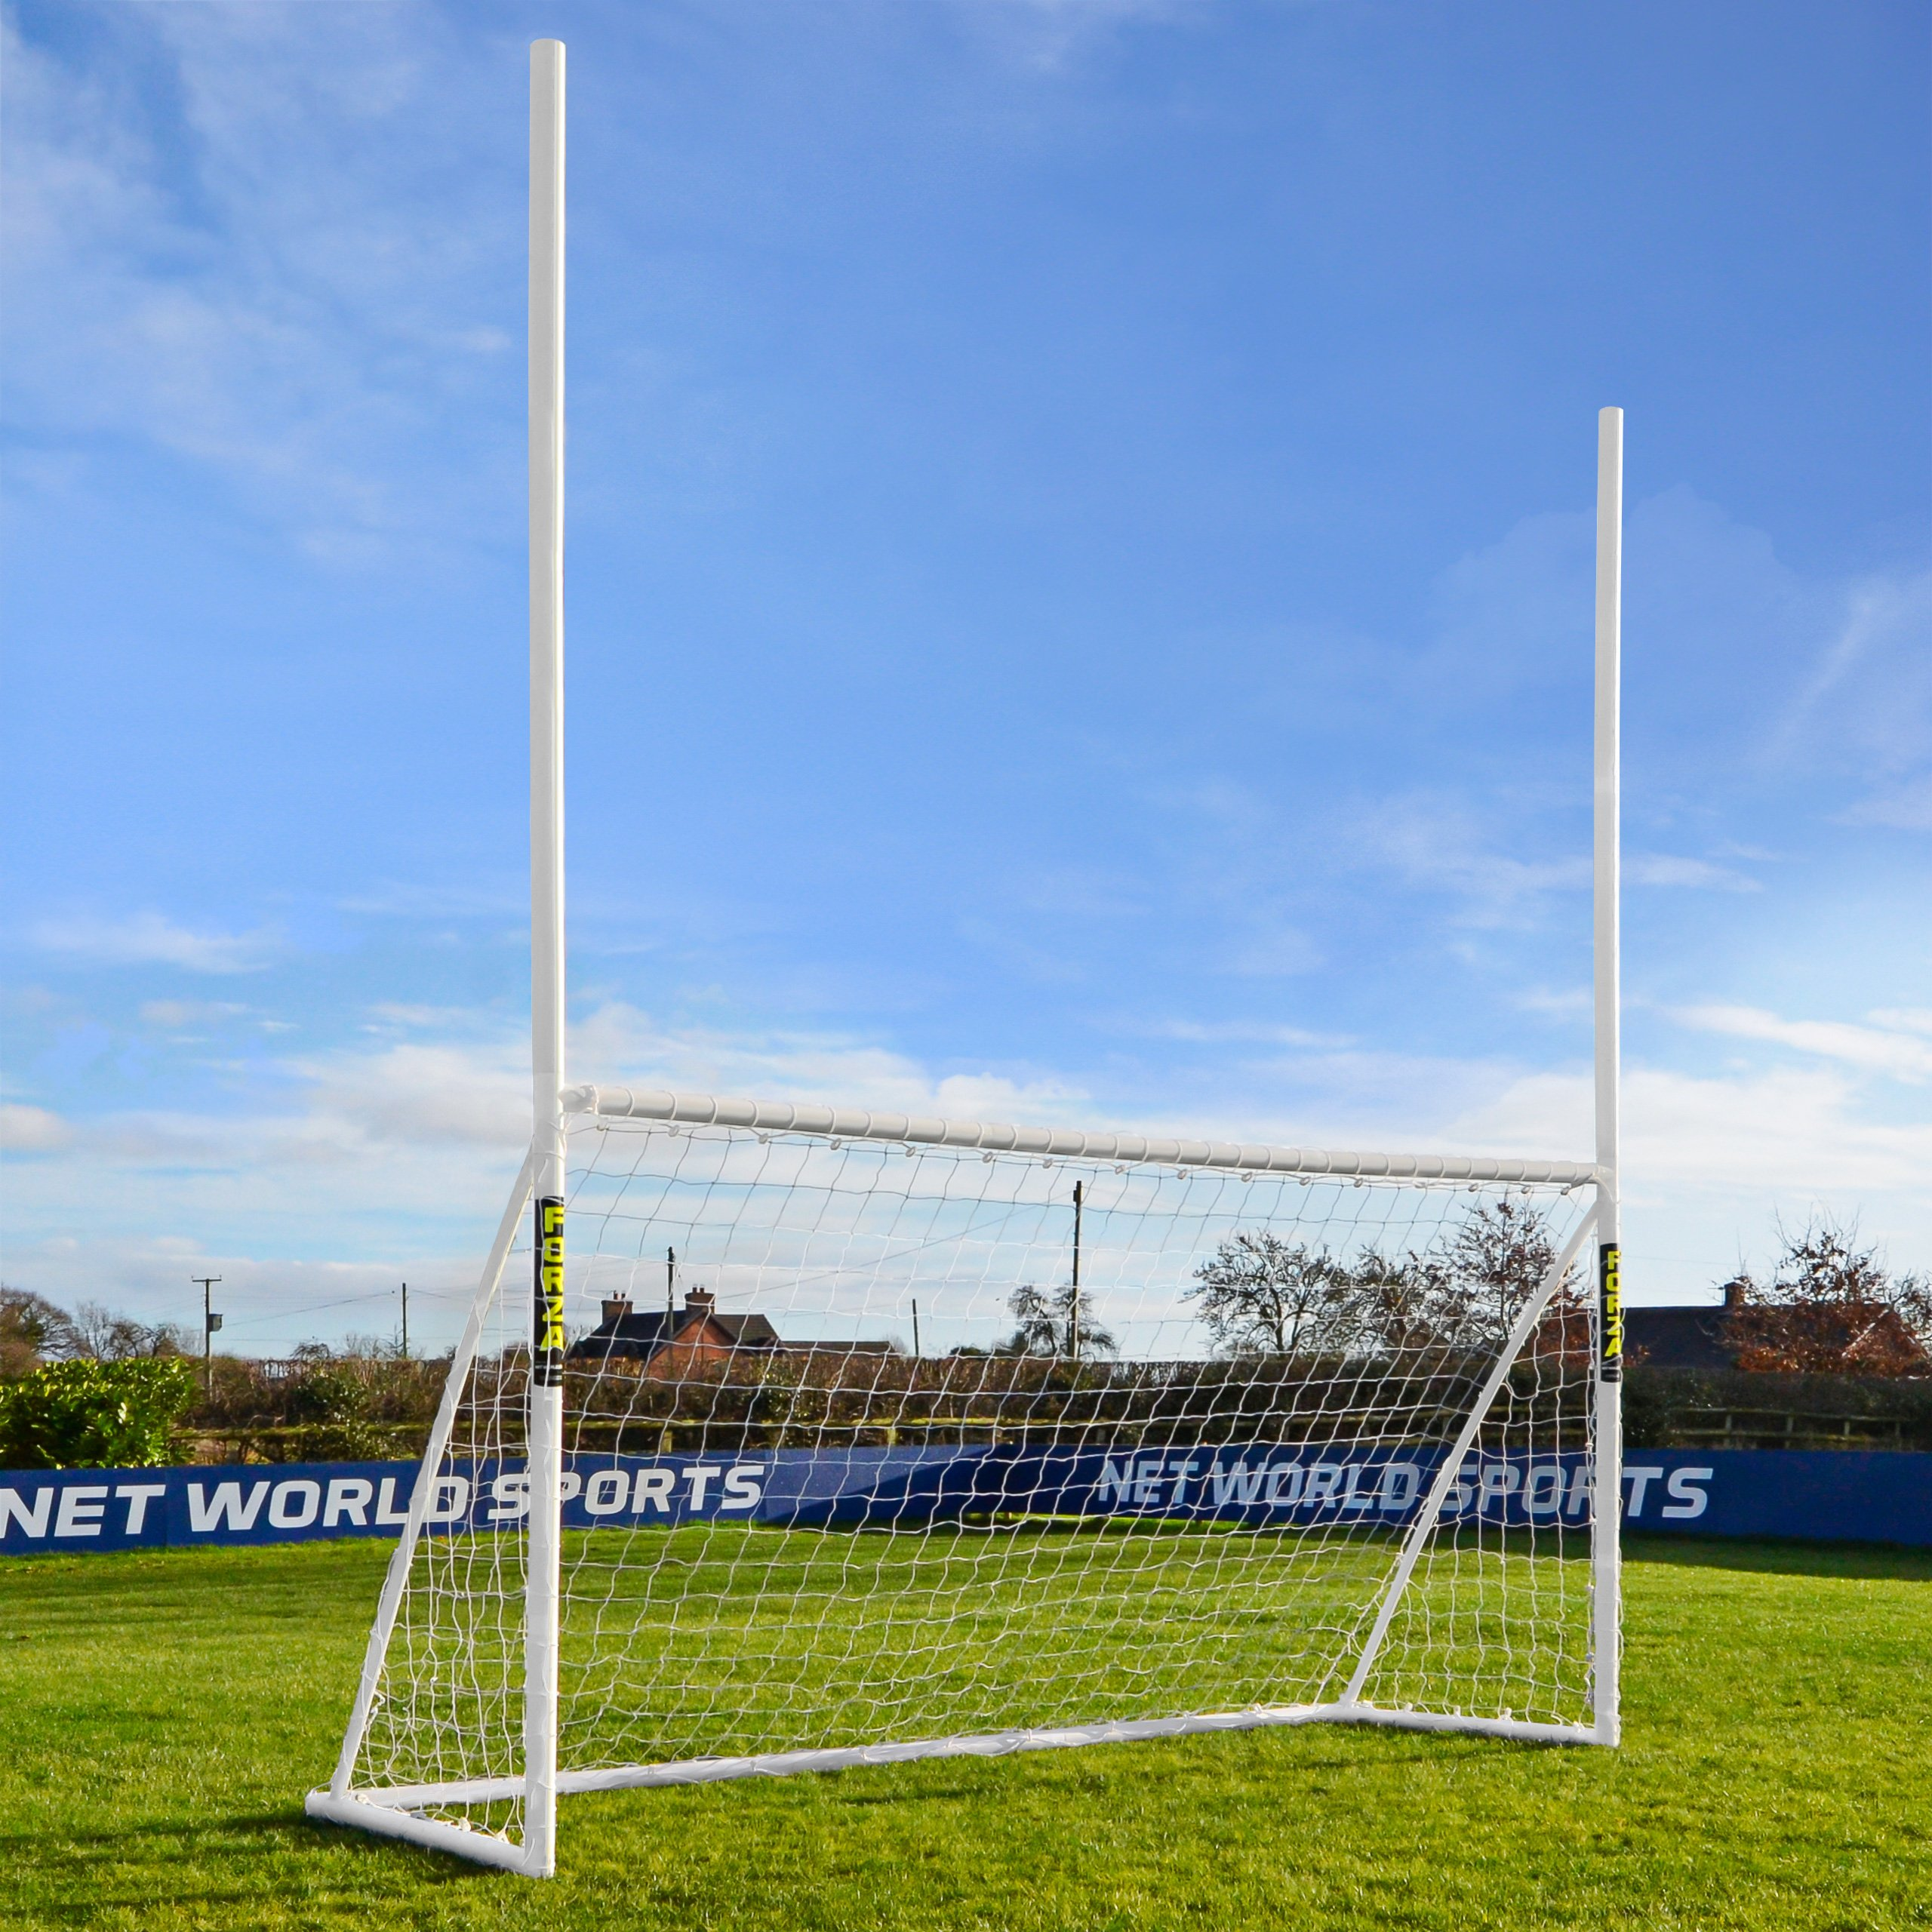 8ft x 5ft FORZA Gaelic Football & Hurling Posts - The Perfect Introduction To Gaelic Football [Net World Sports]